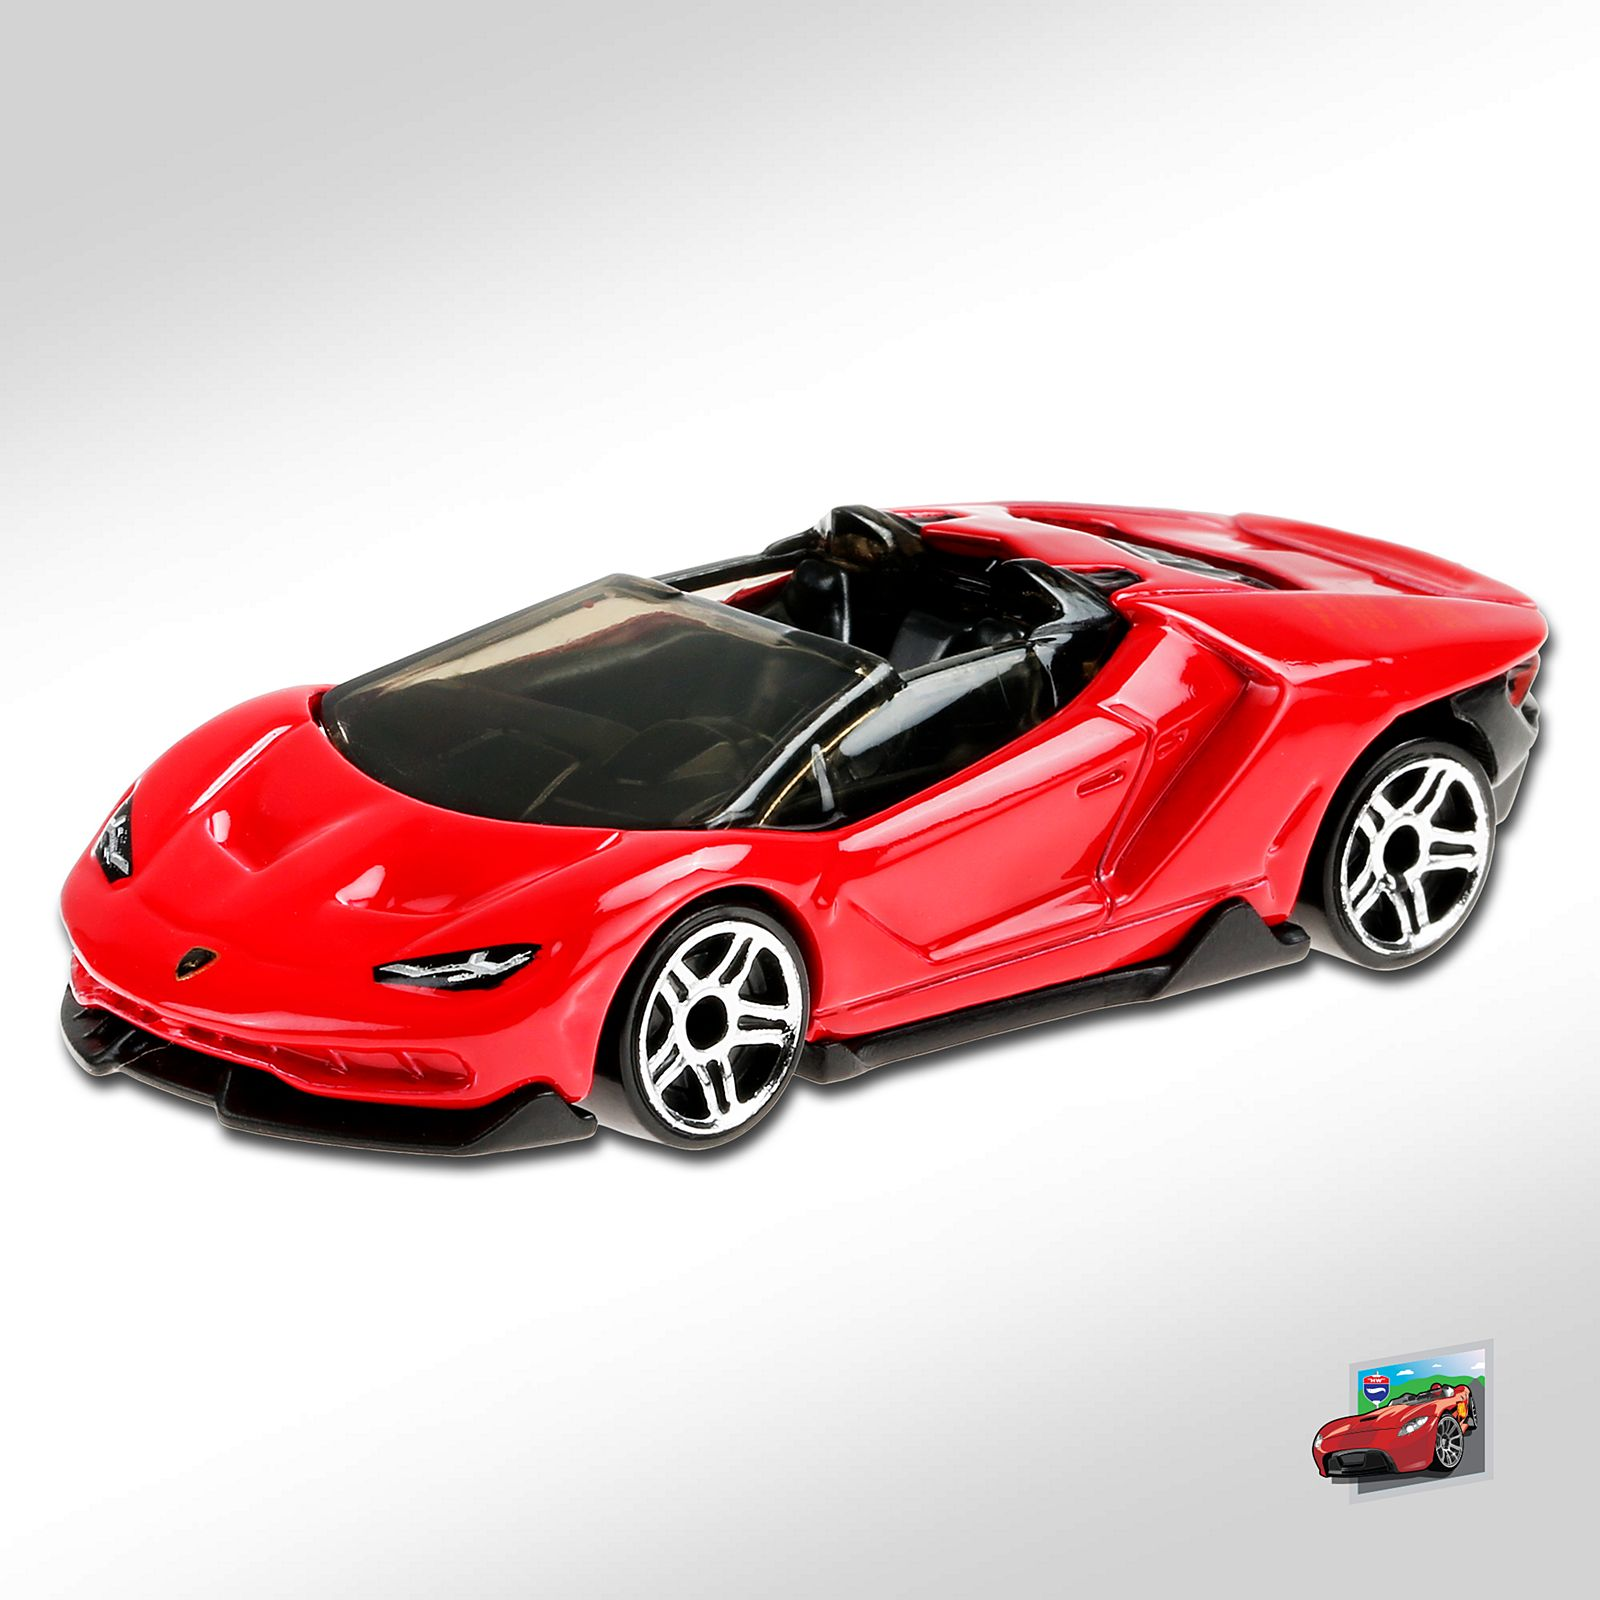 Carrinho Hot Wheels '16 Lamborghini Centenario Roadster (OLEZW) Hw RoadSters - Mattel